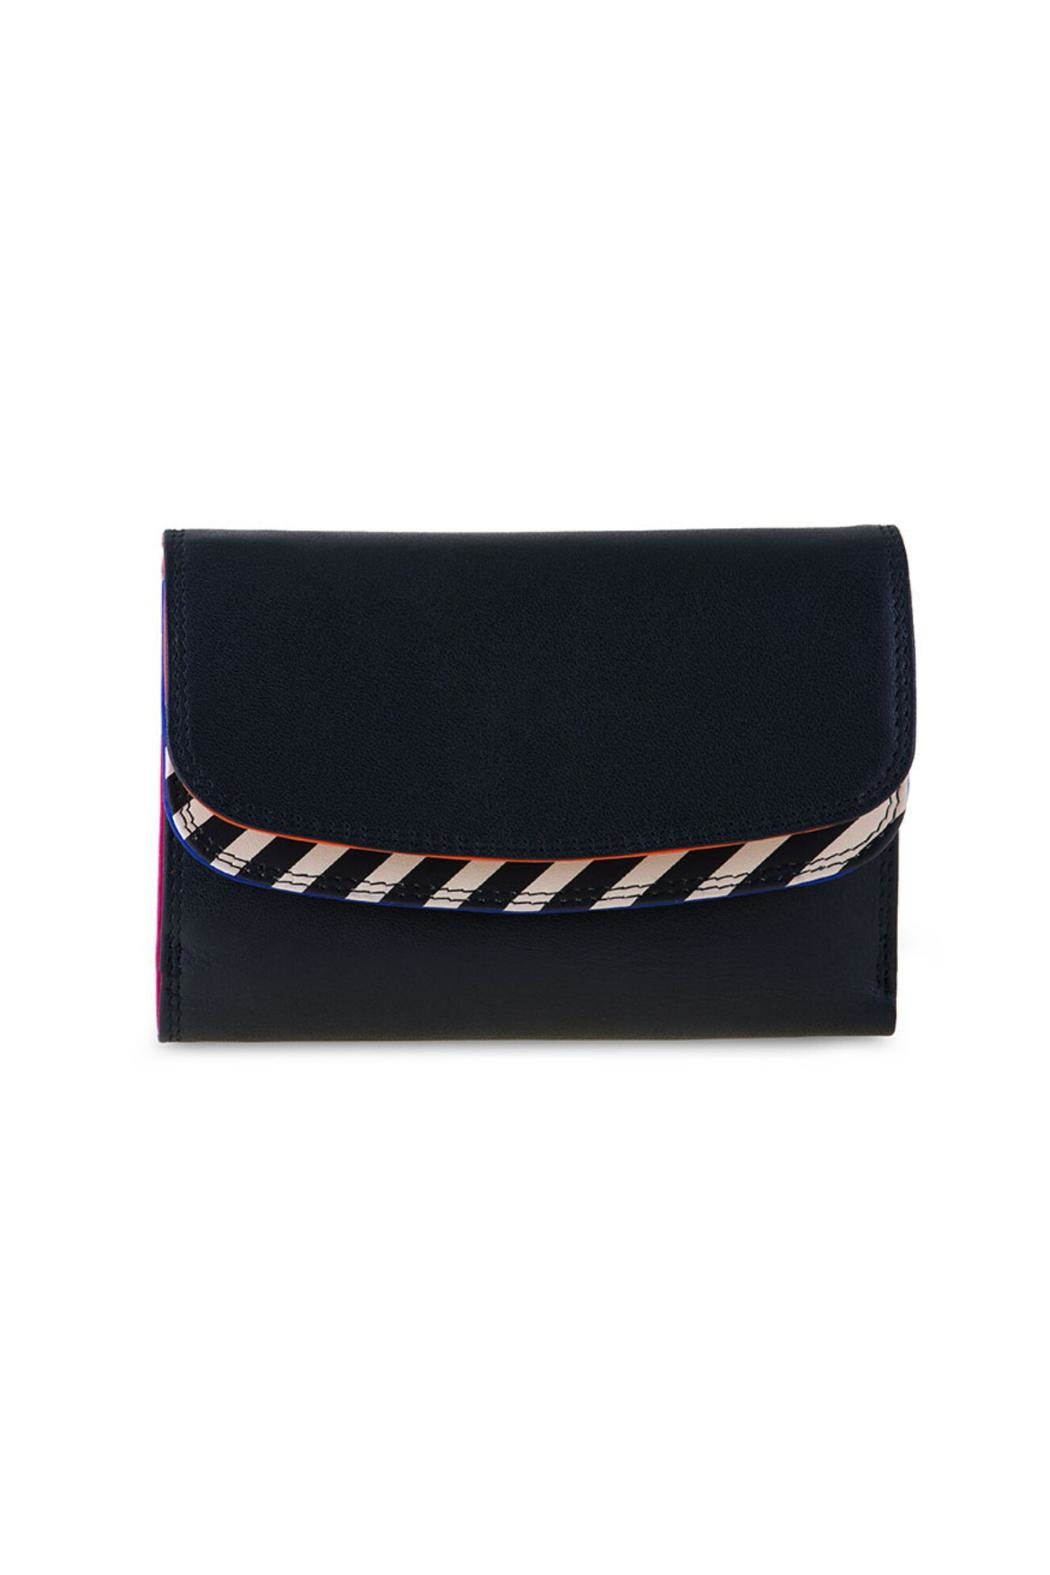 mywalit Nappa Leather Wallet - Main Image